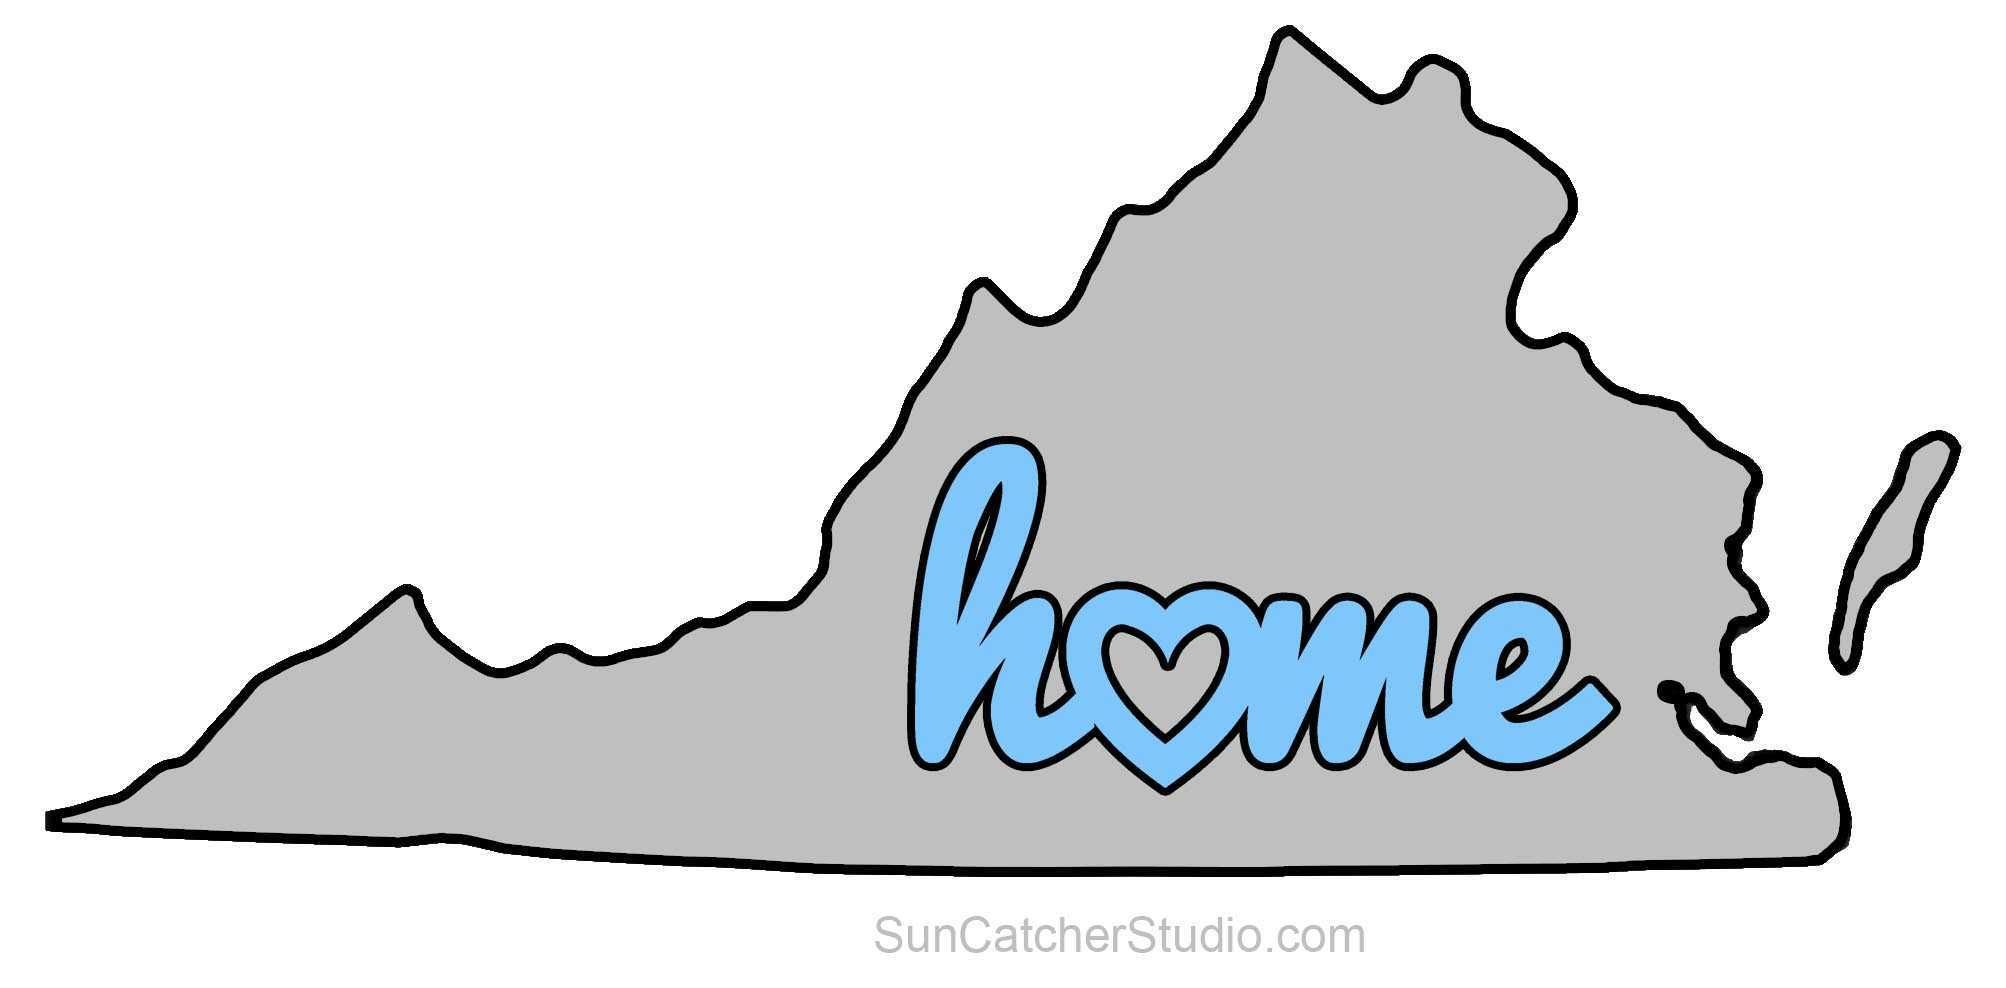 Virginia clipart free graphic library download Virginia - Map Outline, Printable State, Shape, Stencil ... graphic library download